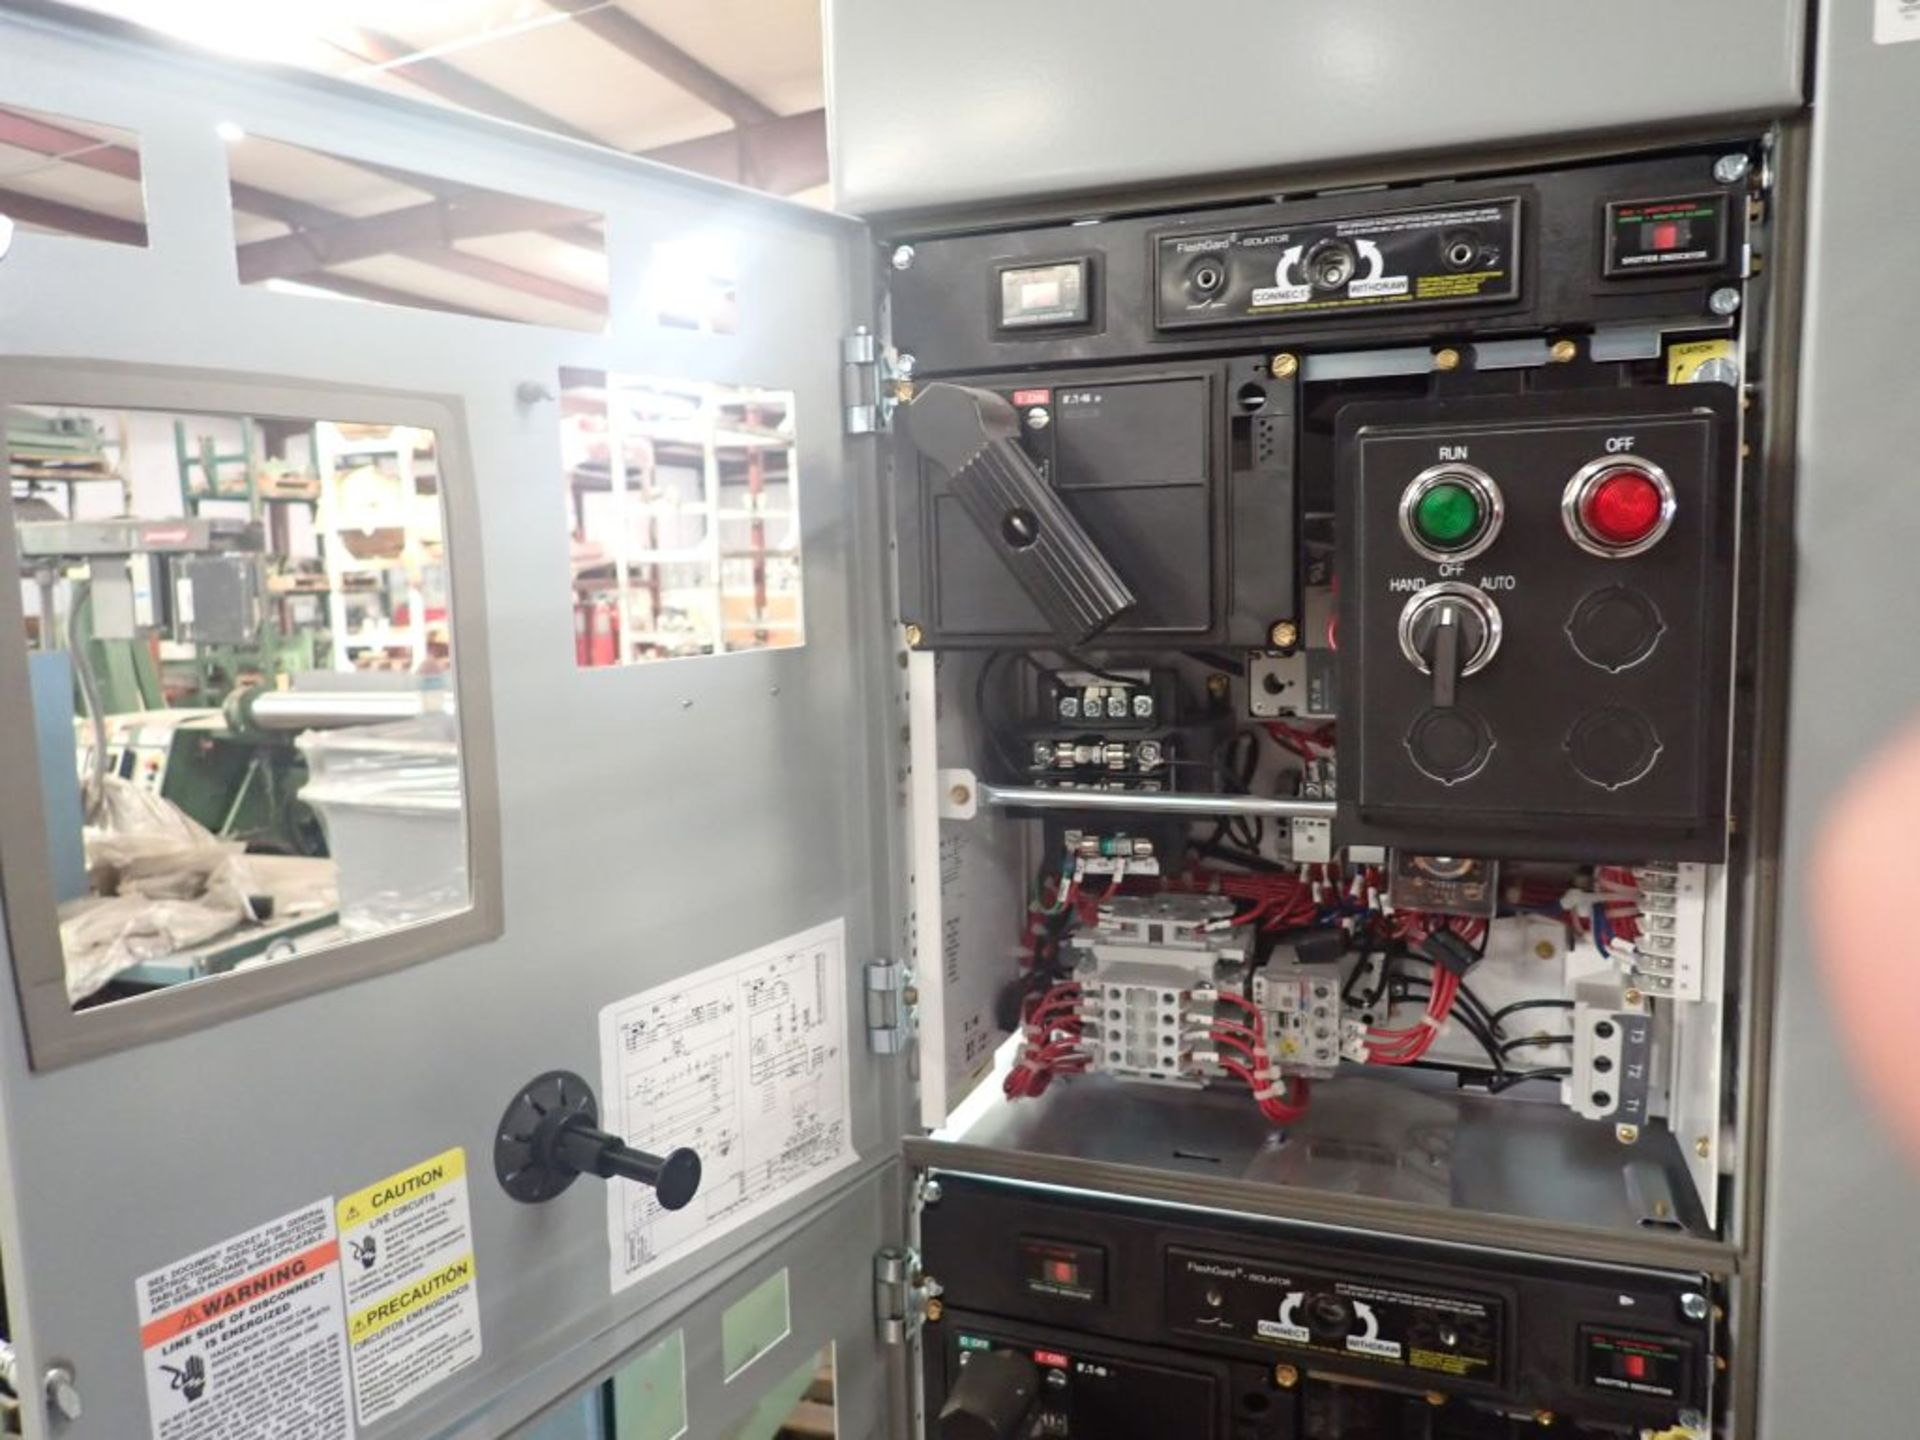 Eaton Freedom 2100 Series Motor Control Center   (2) F206-15A-10HP; (1) F206-30A-10HP; (1) FDRB- - Image 17 of 61